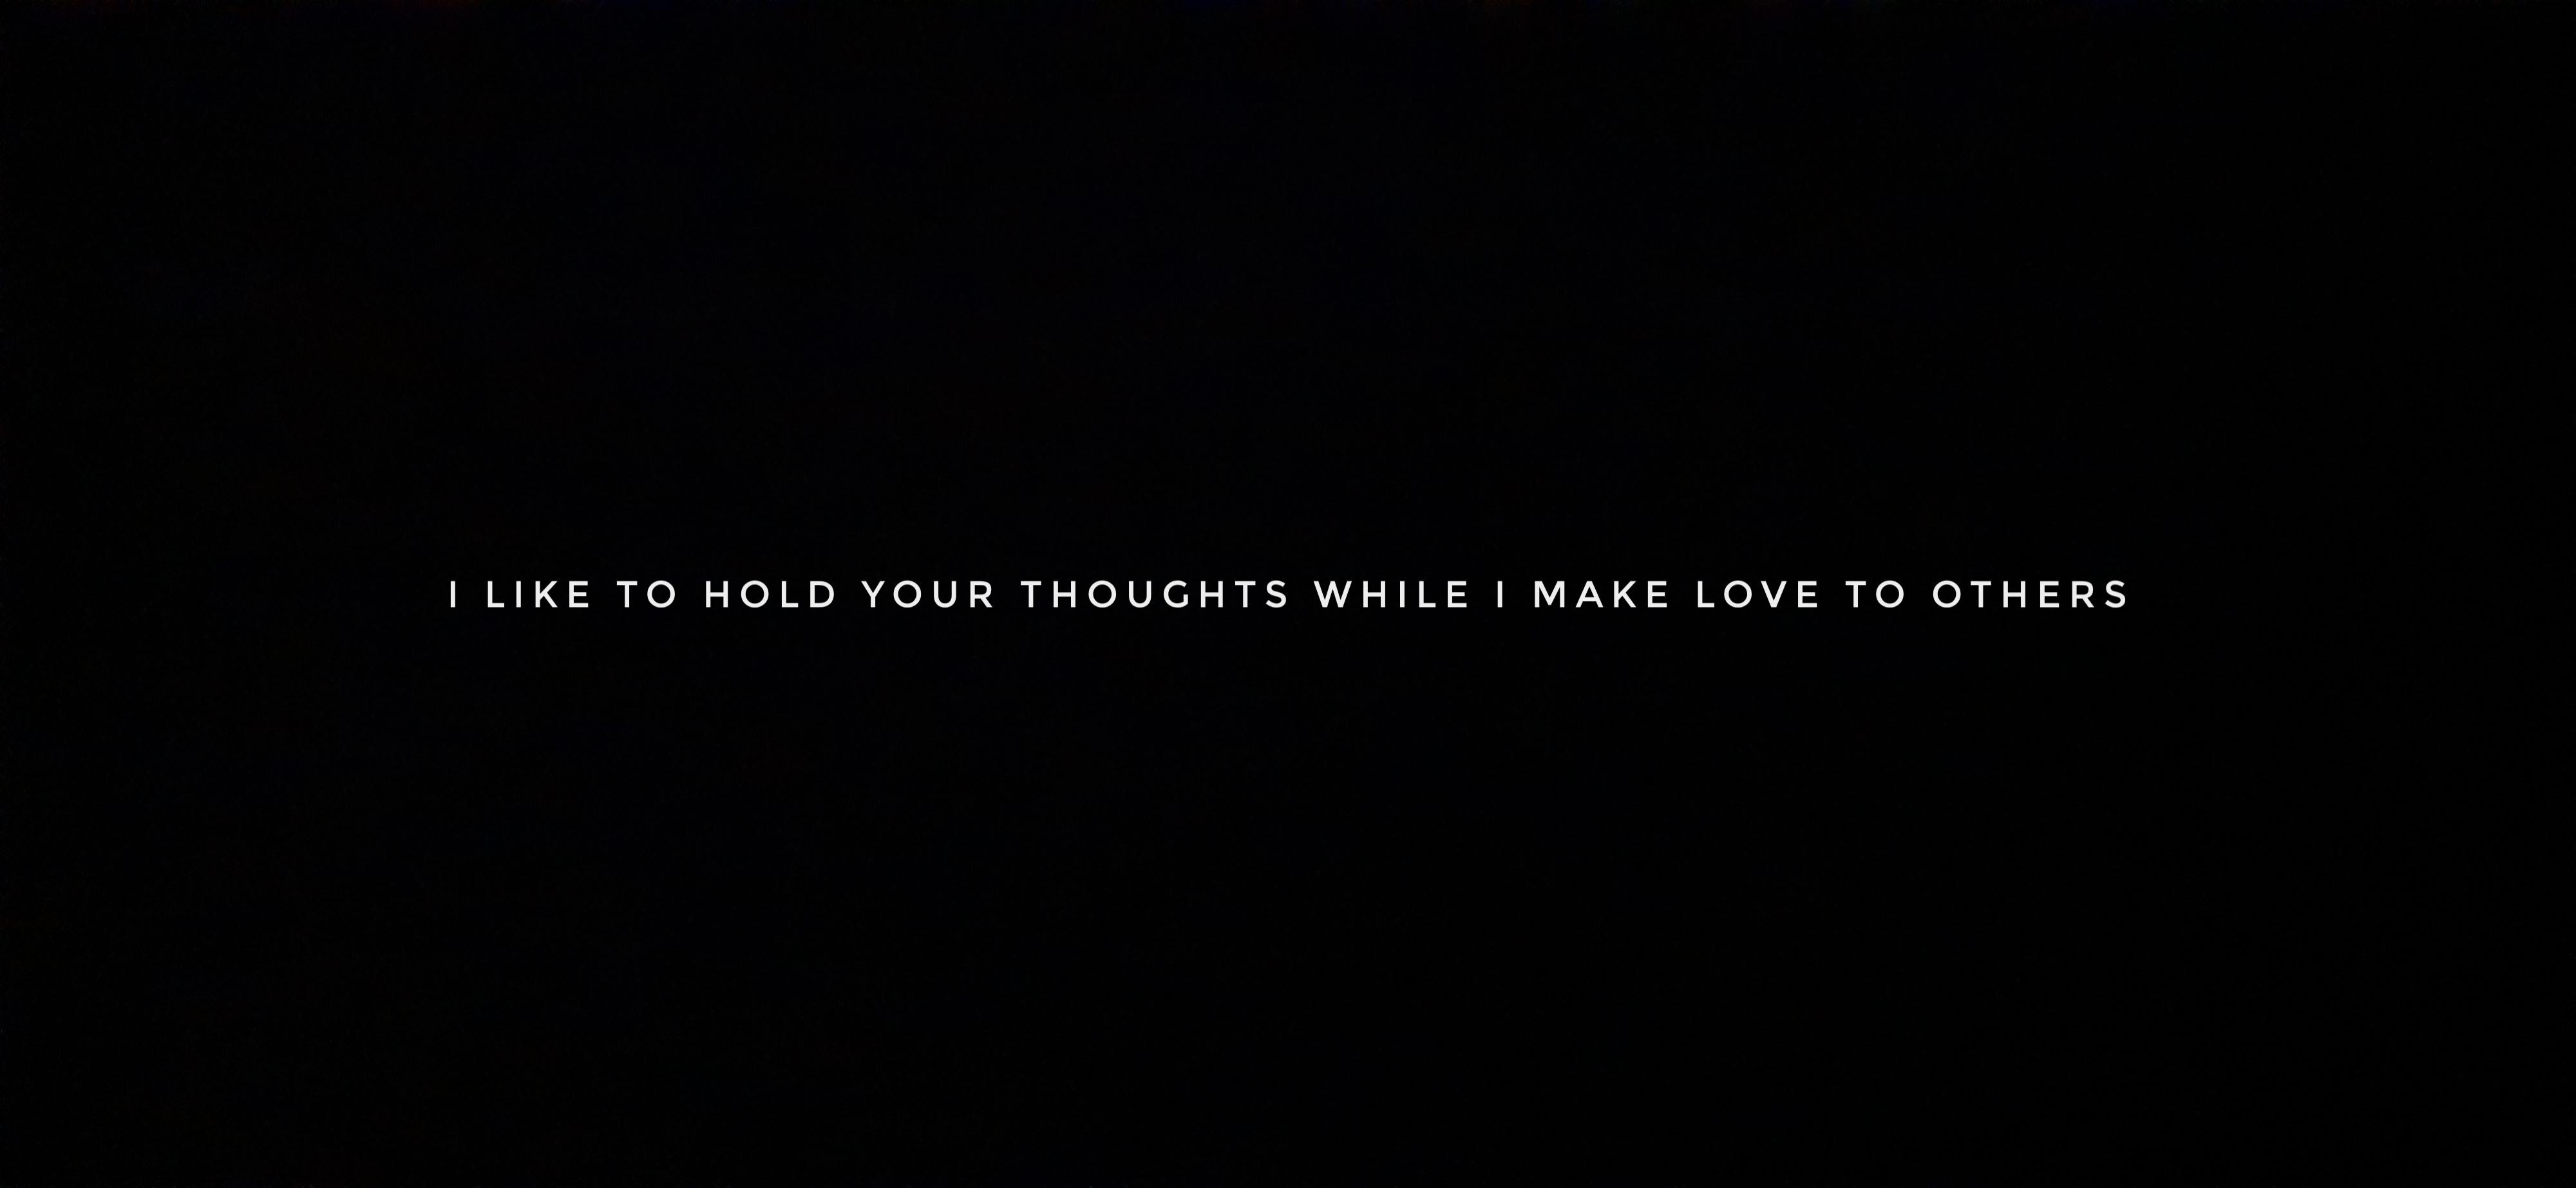 I LIKE TO HOLD YOUR THOUGHTS WHILE I MAKE LOVE https://inspirational.ly